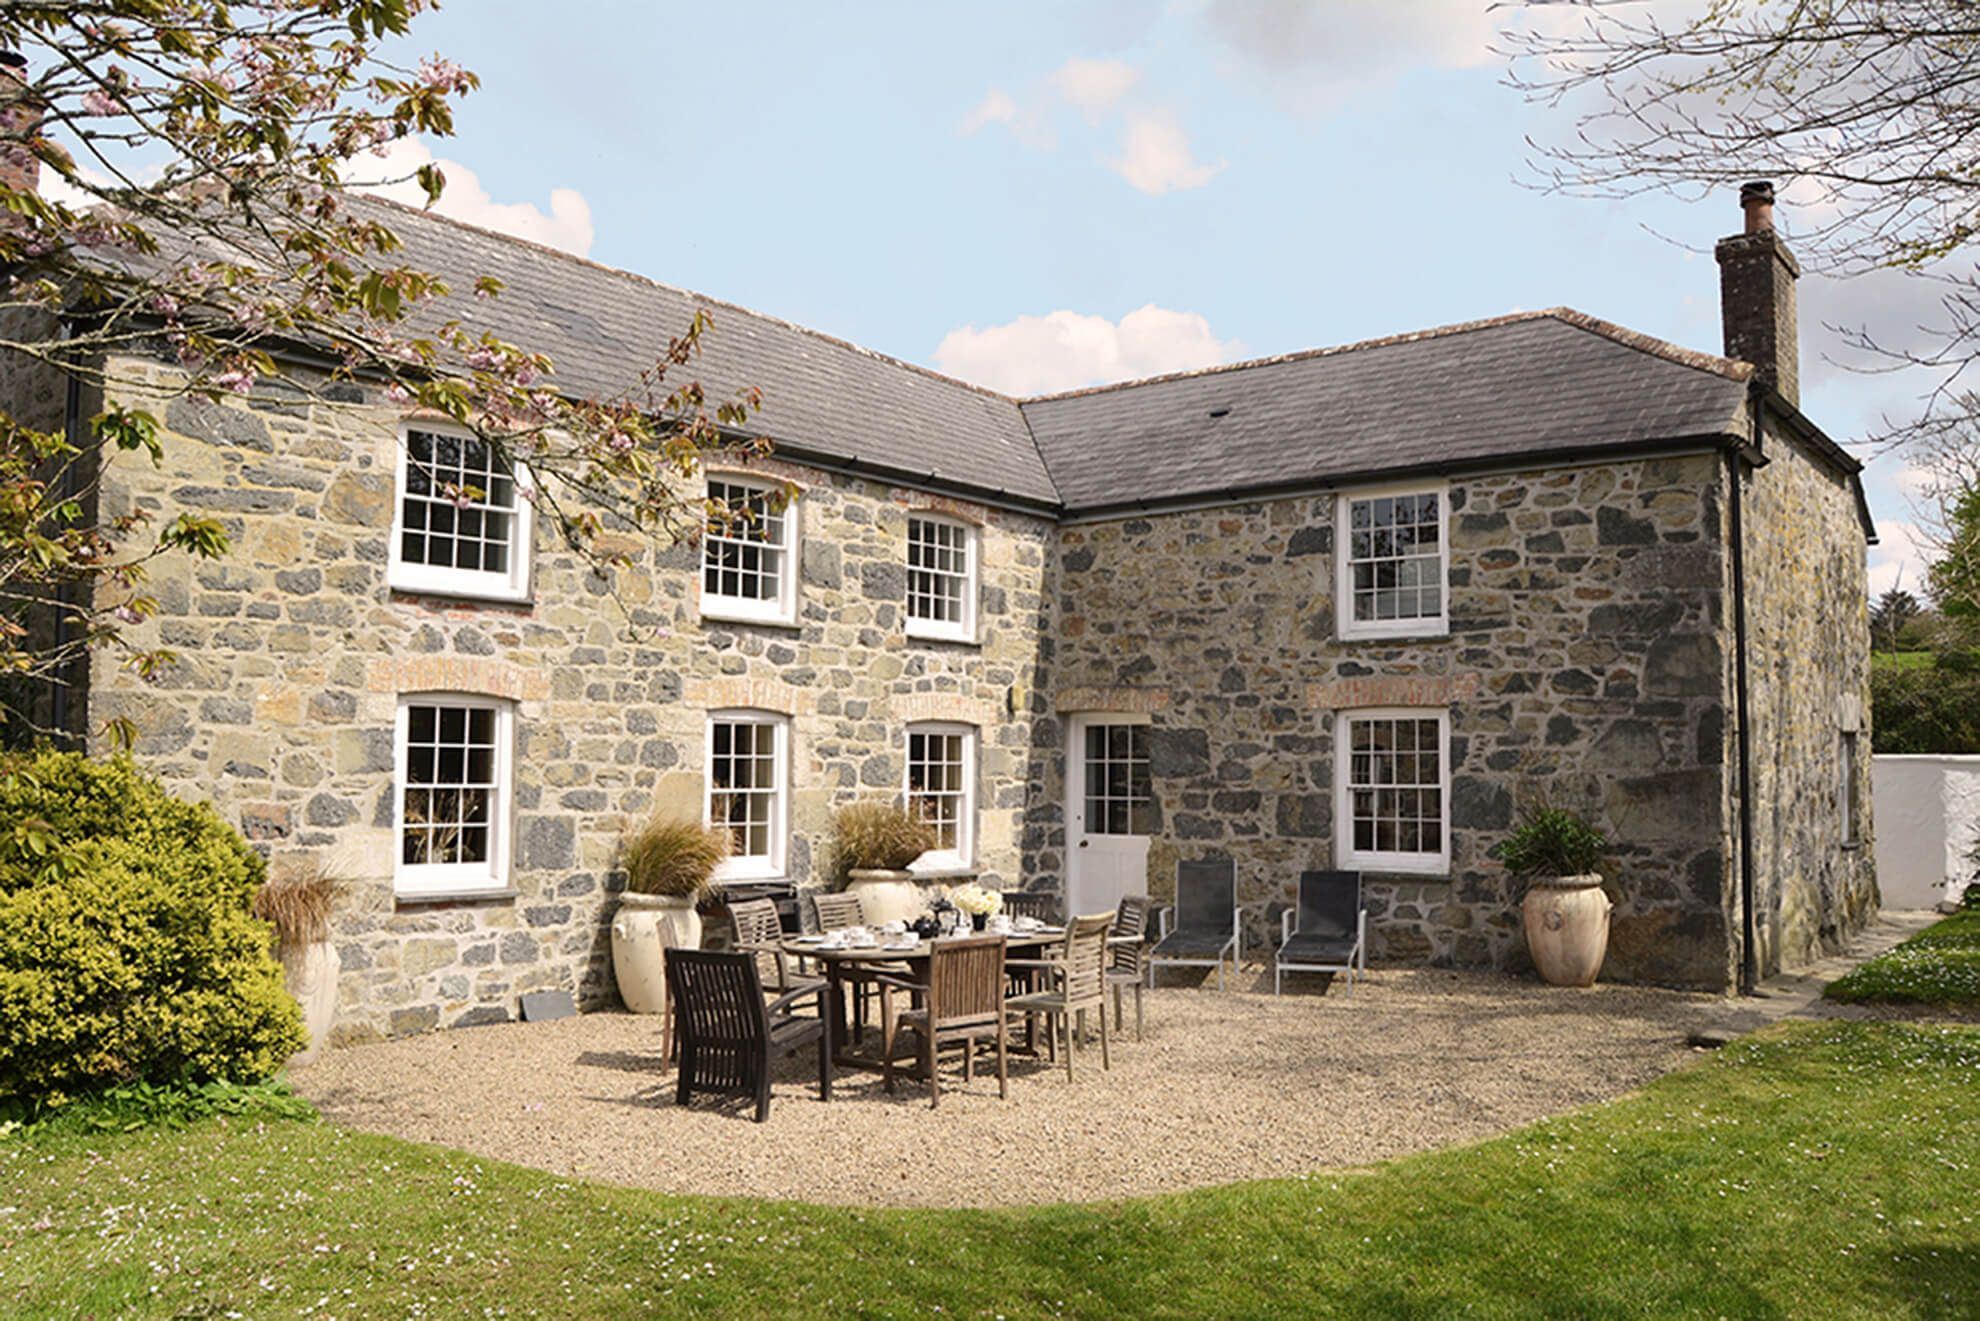 The beautifully appointed farmhouse has a sunny barbecue terrace